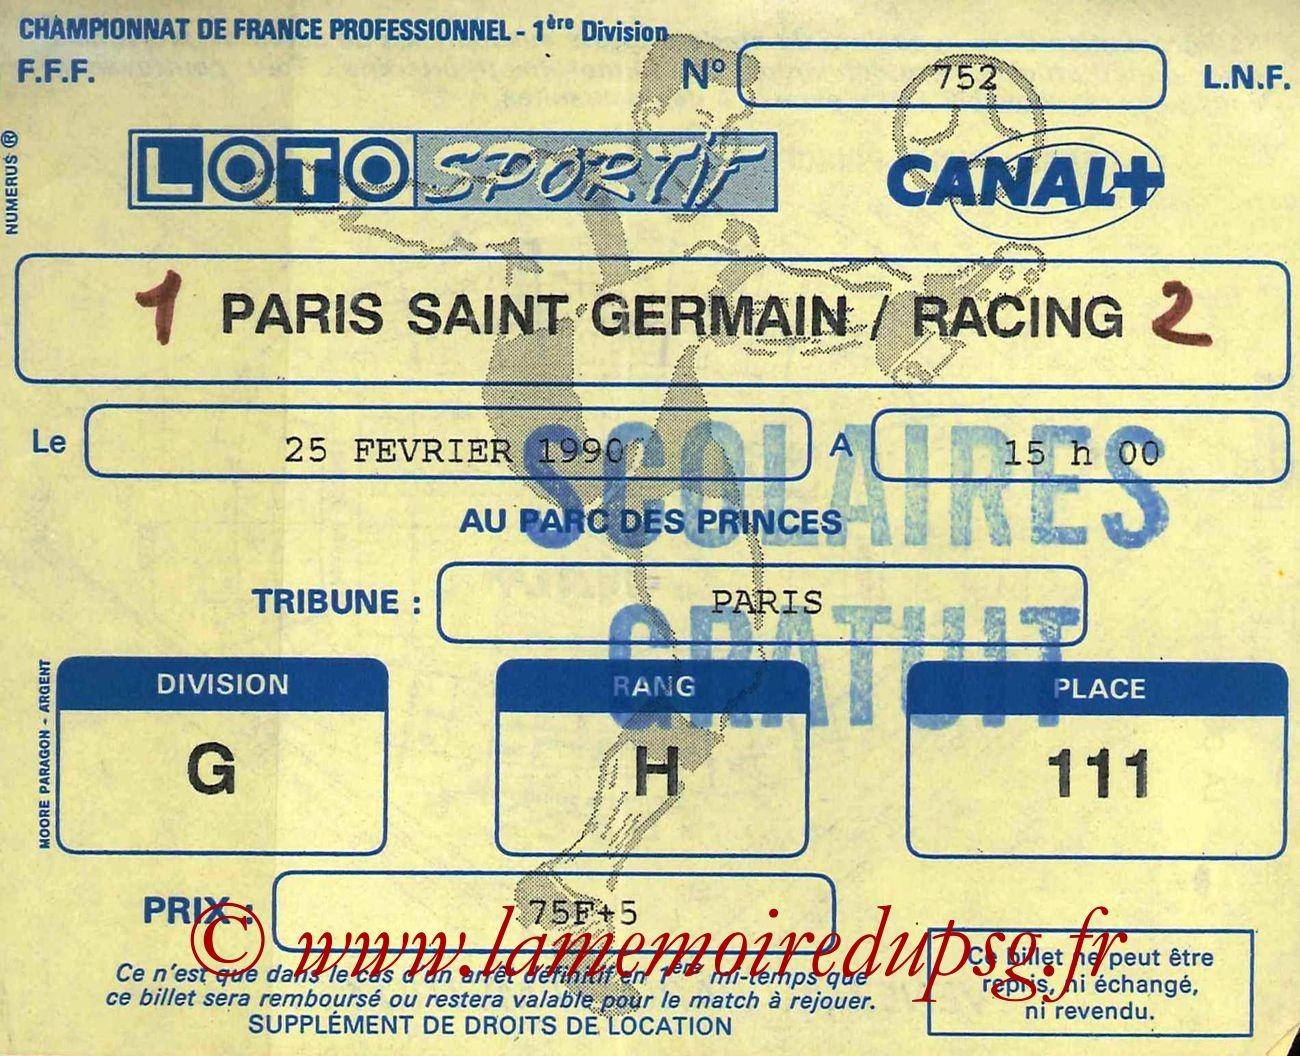 1990-02-25  PSG-Racing Paris 1 (27ème D1 bis)